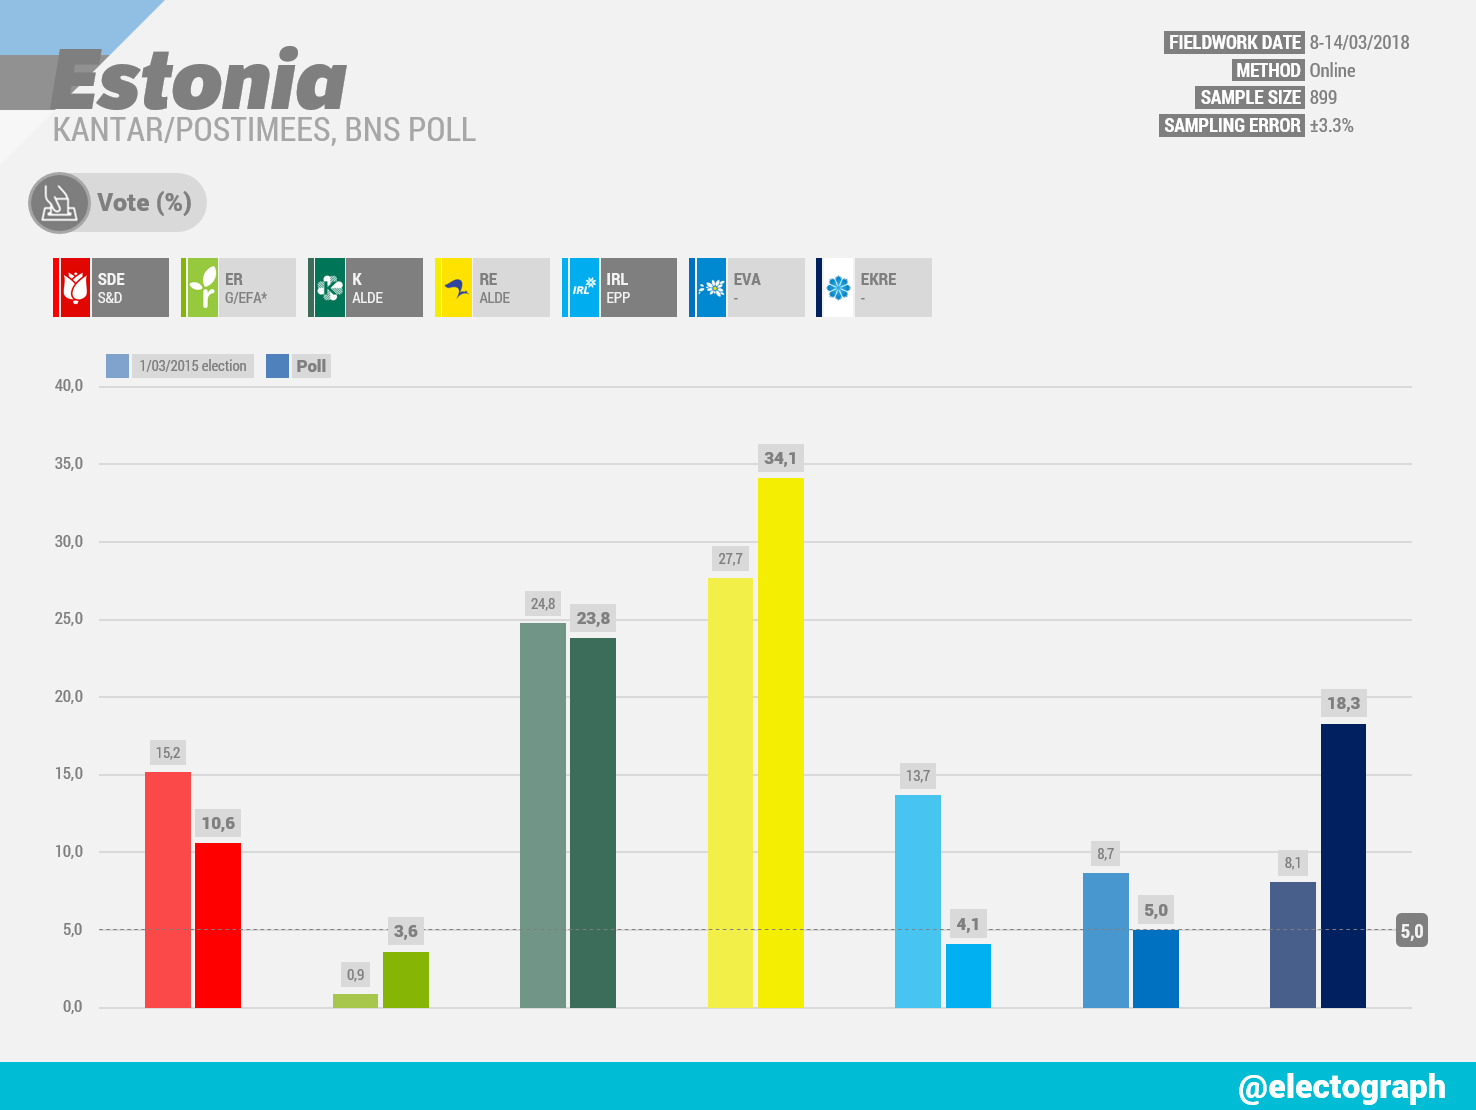 ESTONIA Kantar poll chart for Postimees and BNS, March 2018